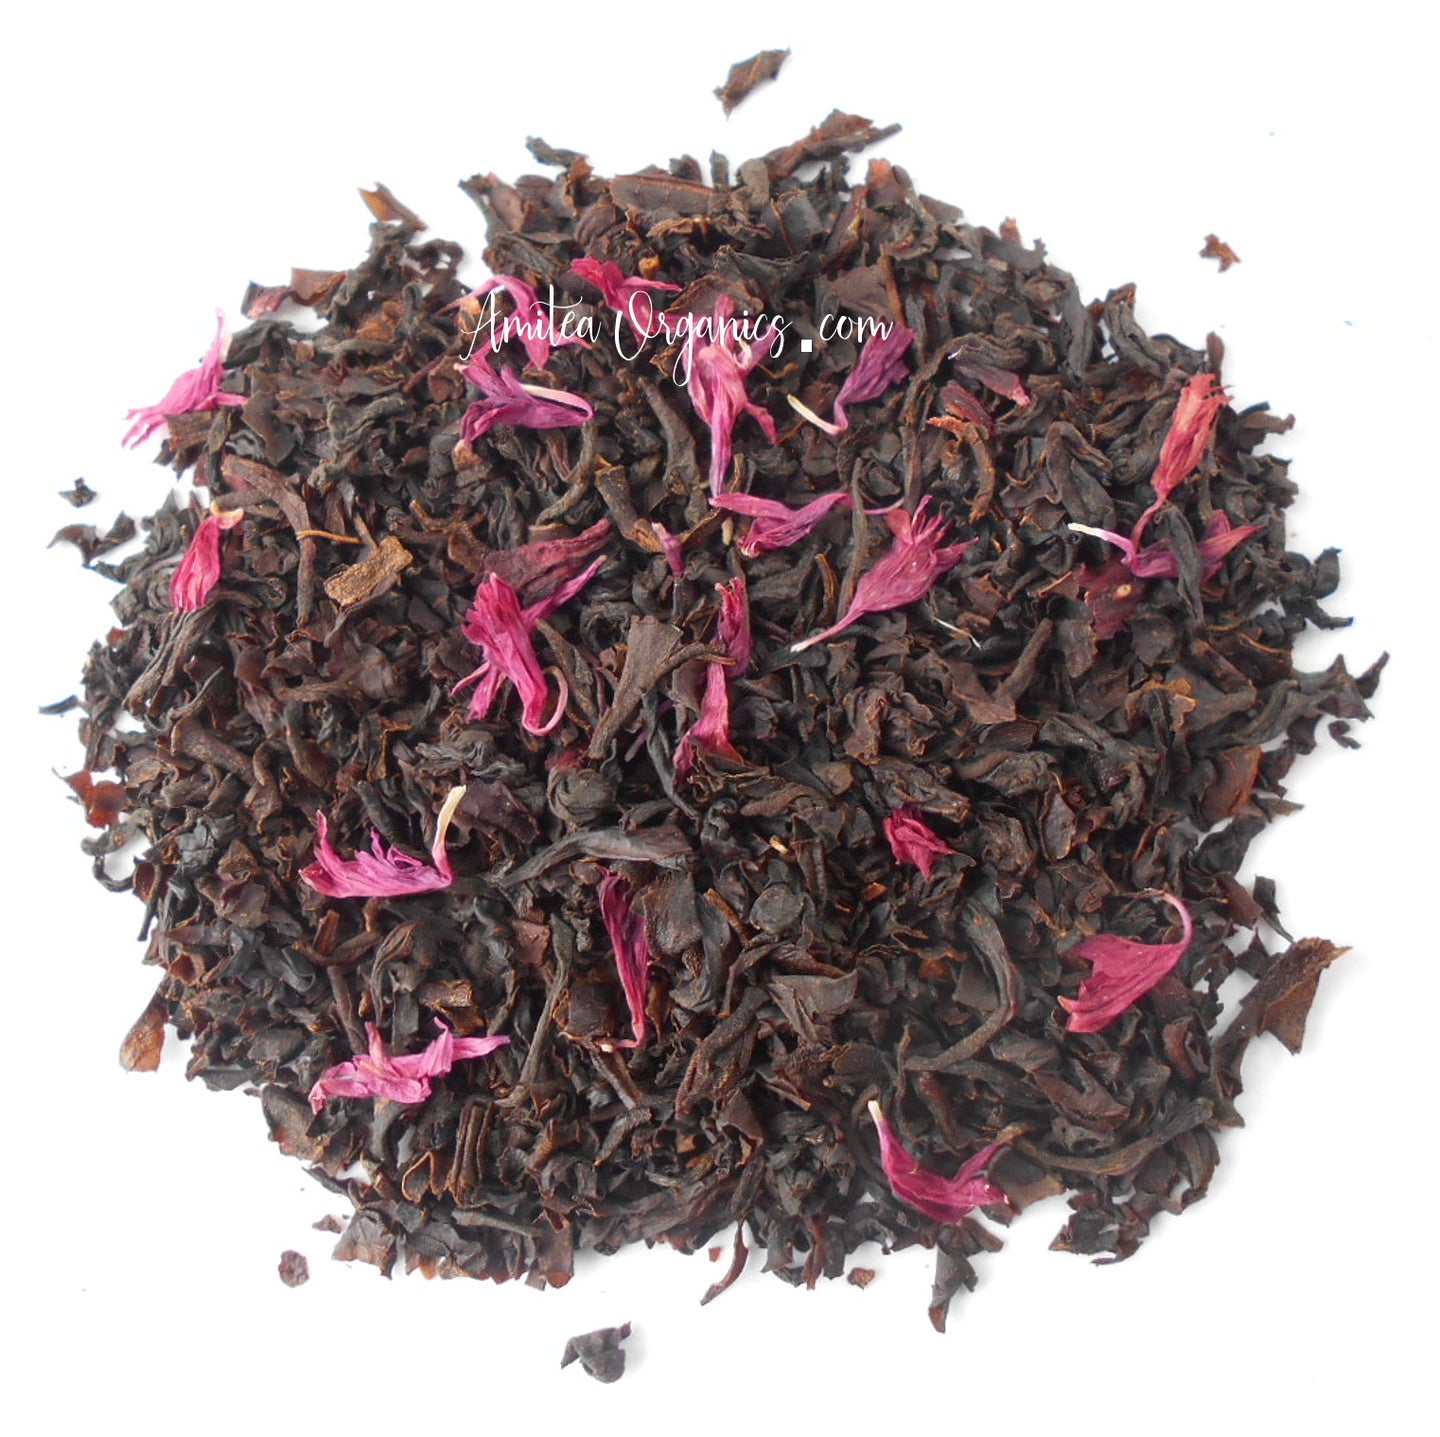 BLACK CHERRY Organic Loose Leaf Tea